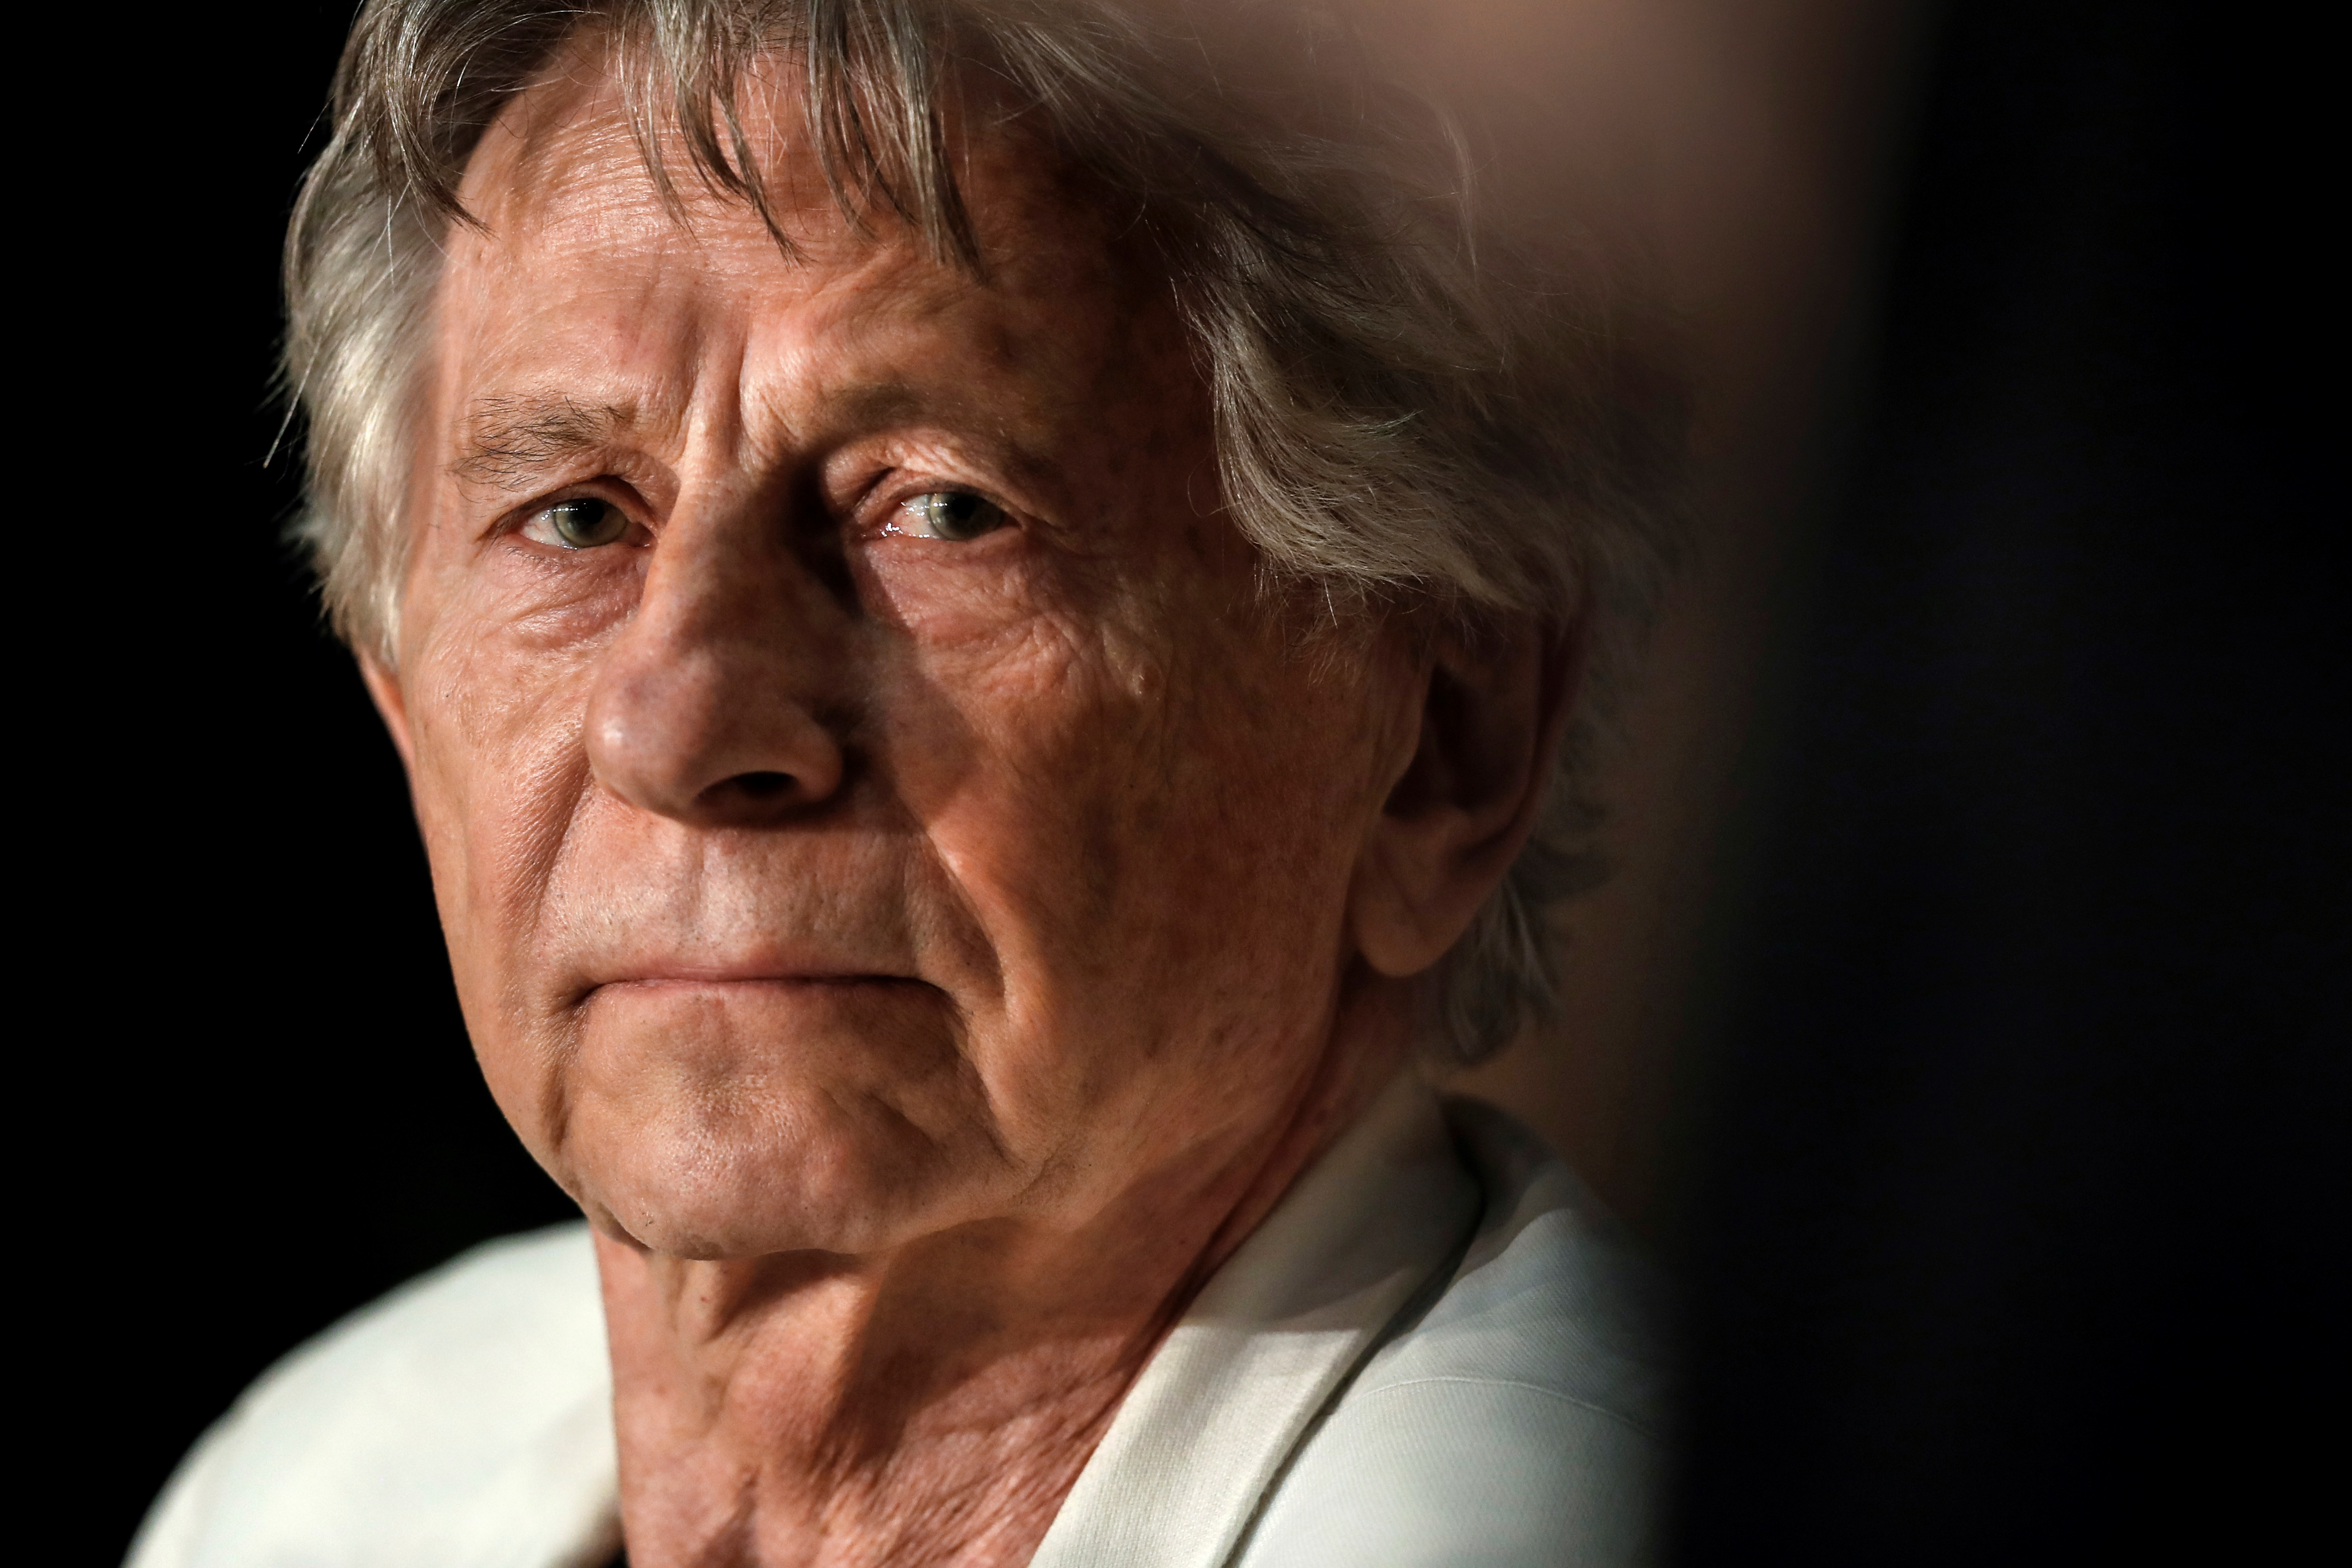 This file photo taken on May 27, 2017 shows French-Polish director Roman Polanski attending a press conference for the film 'Based on a True Story' (D'Apres une Histoire Vraie) at the 70th edition of the Cannes Film Festival. — AFP pic